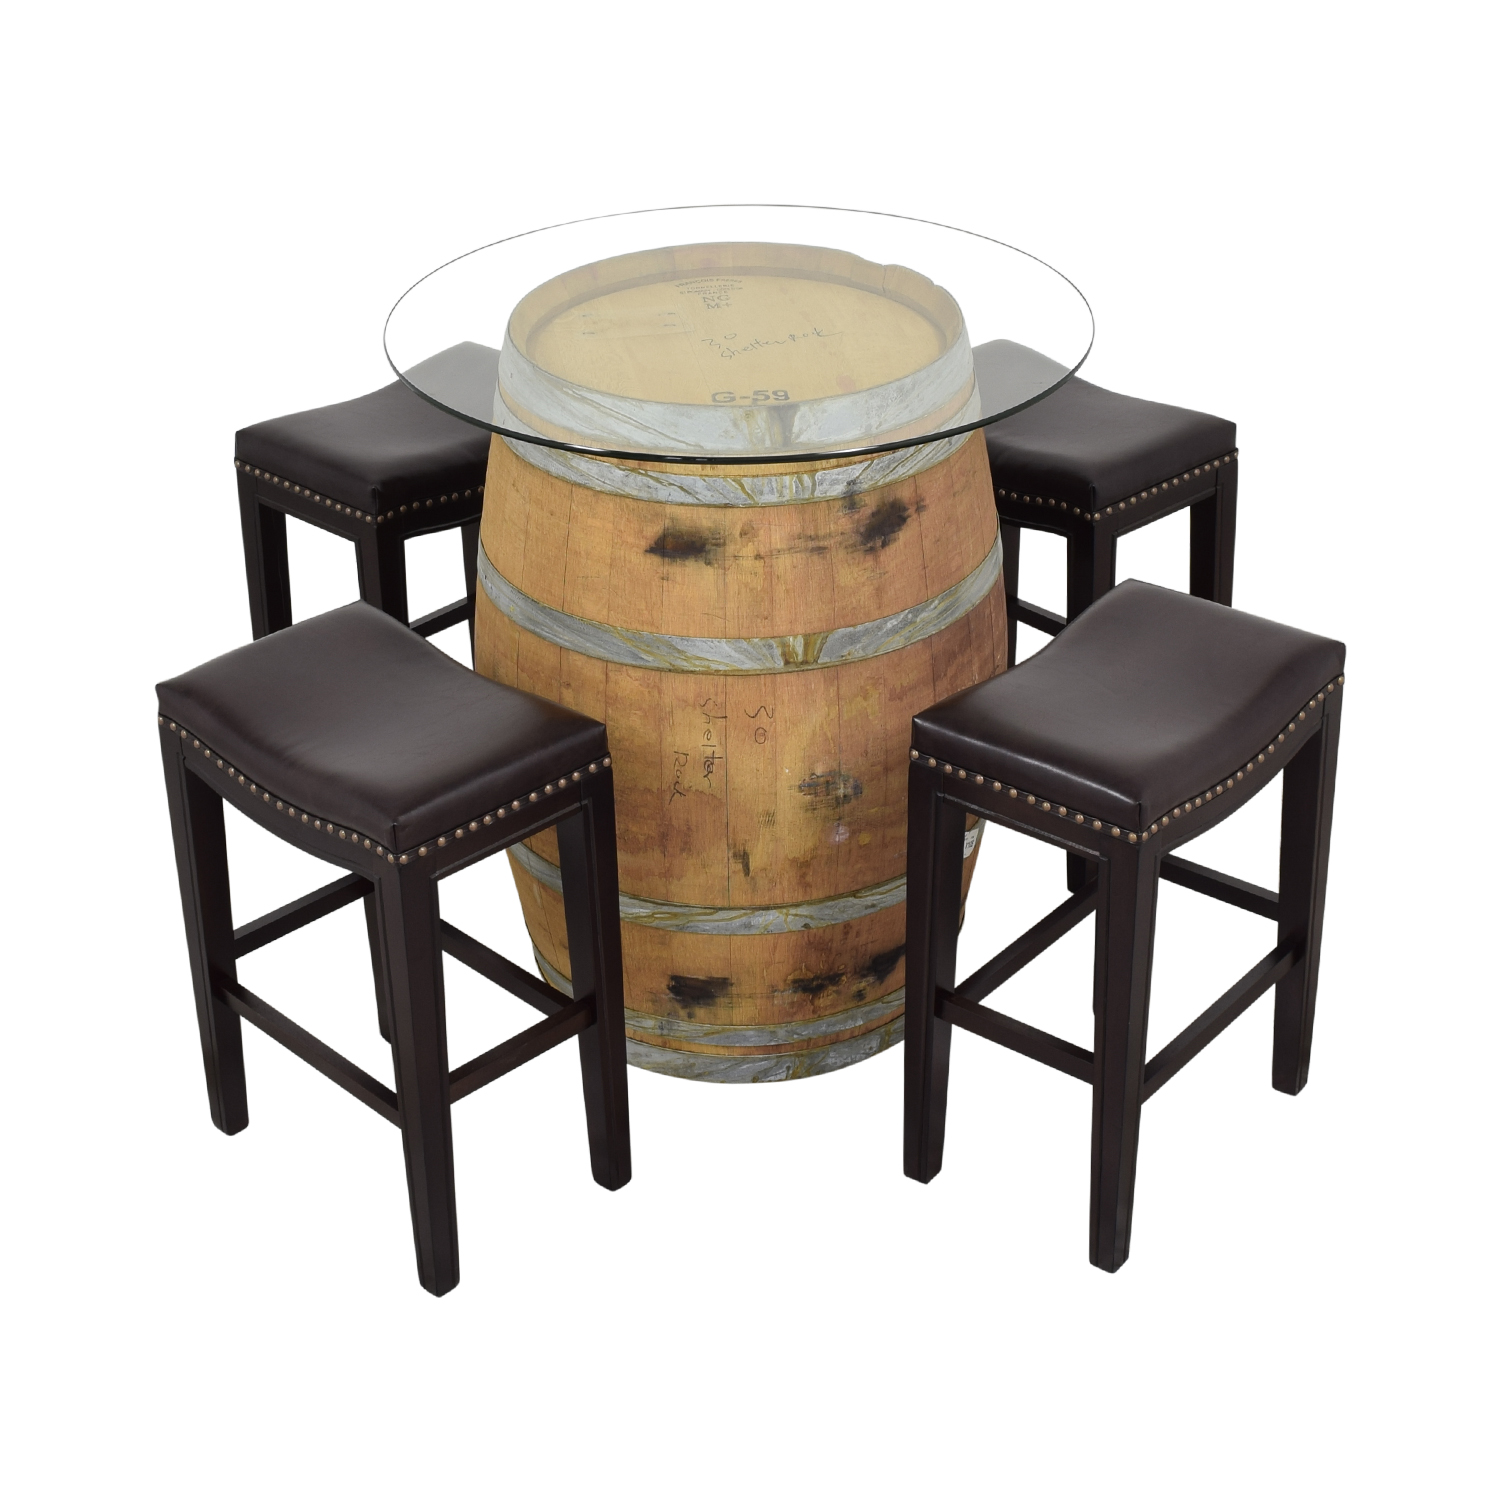 Glass Top Wine Barrel Entertainment Table with Stools / Stools